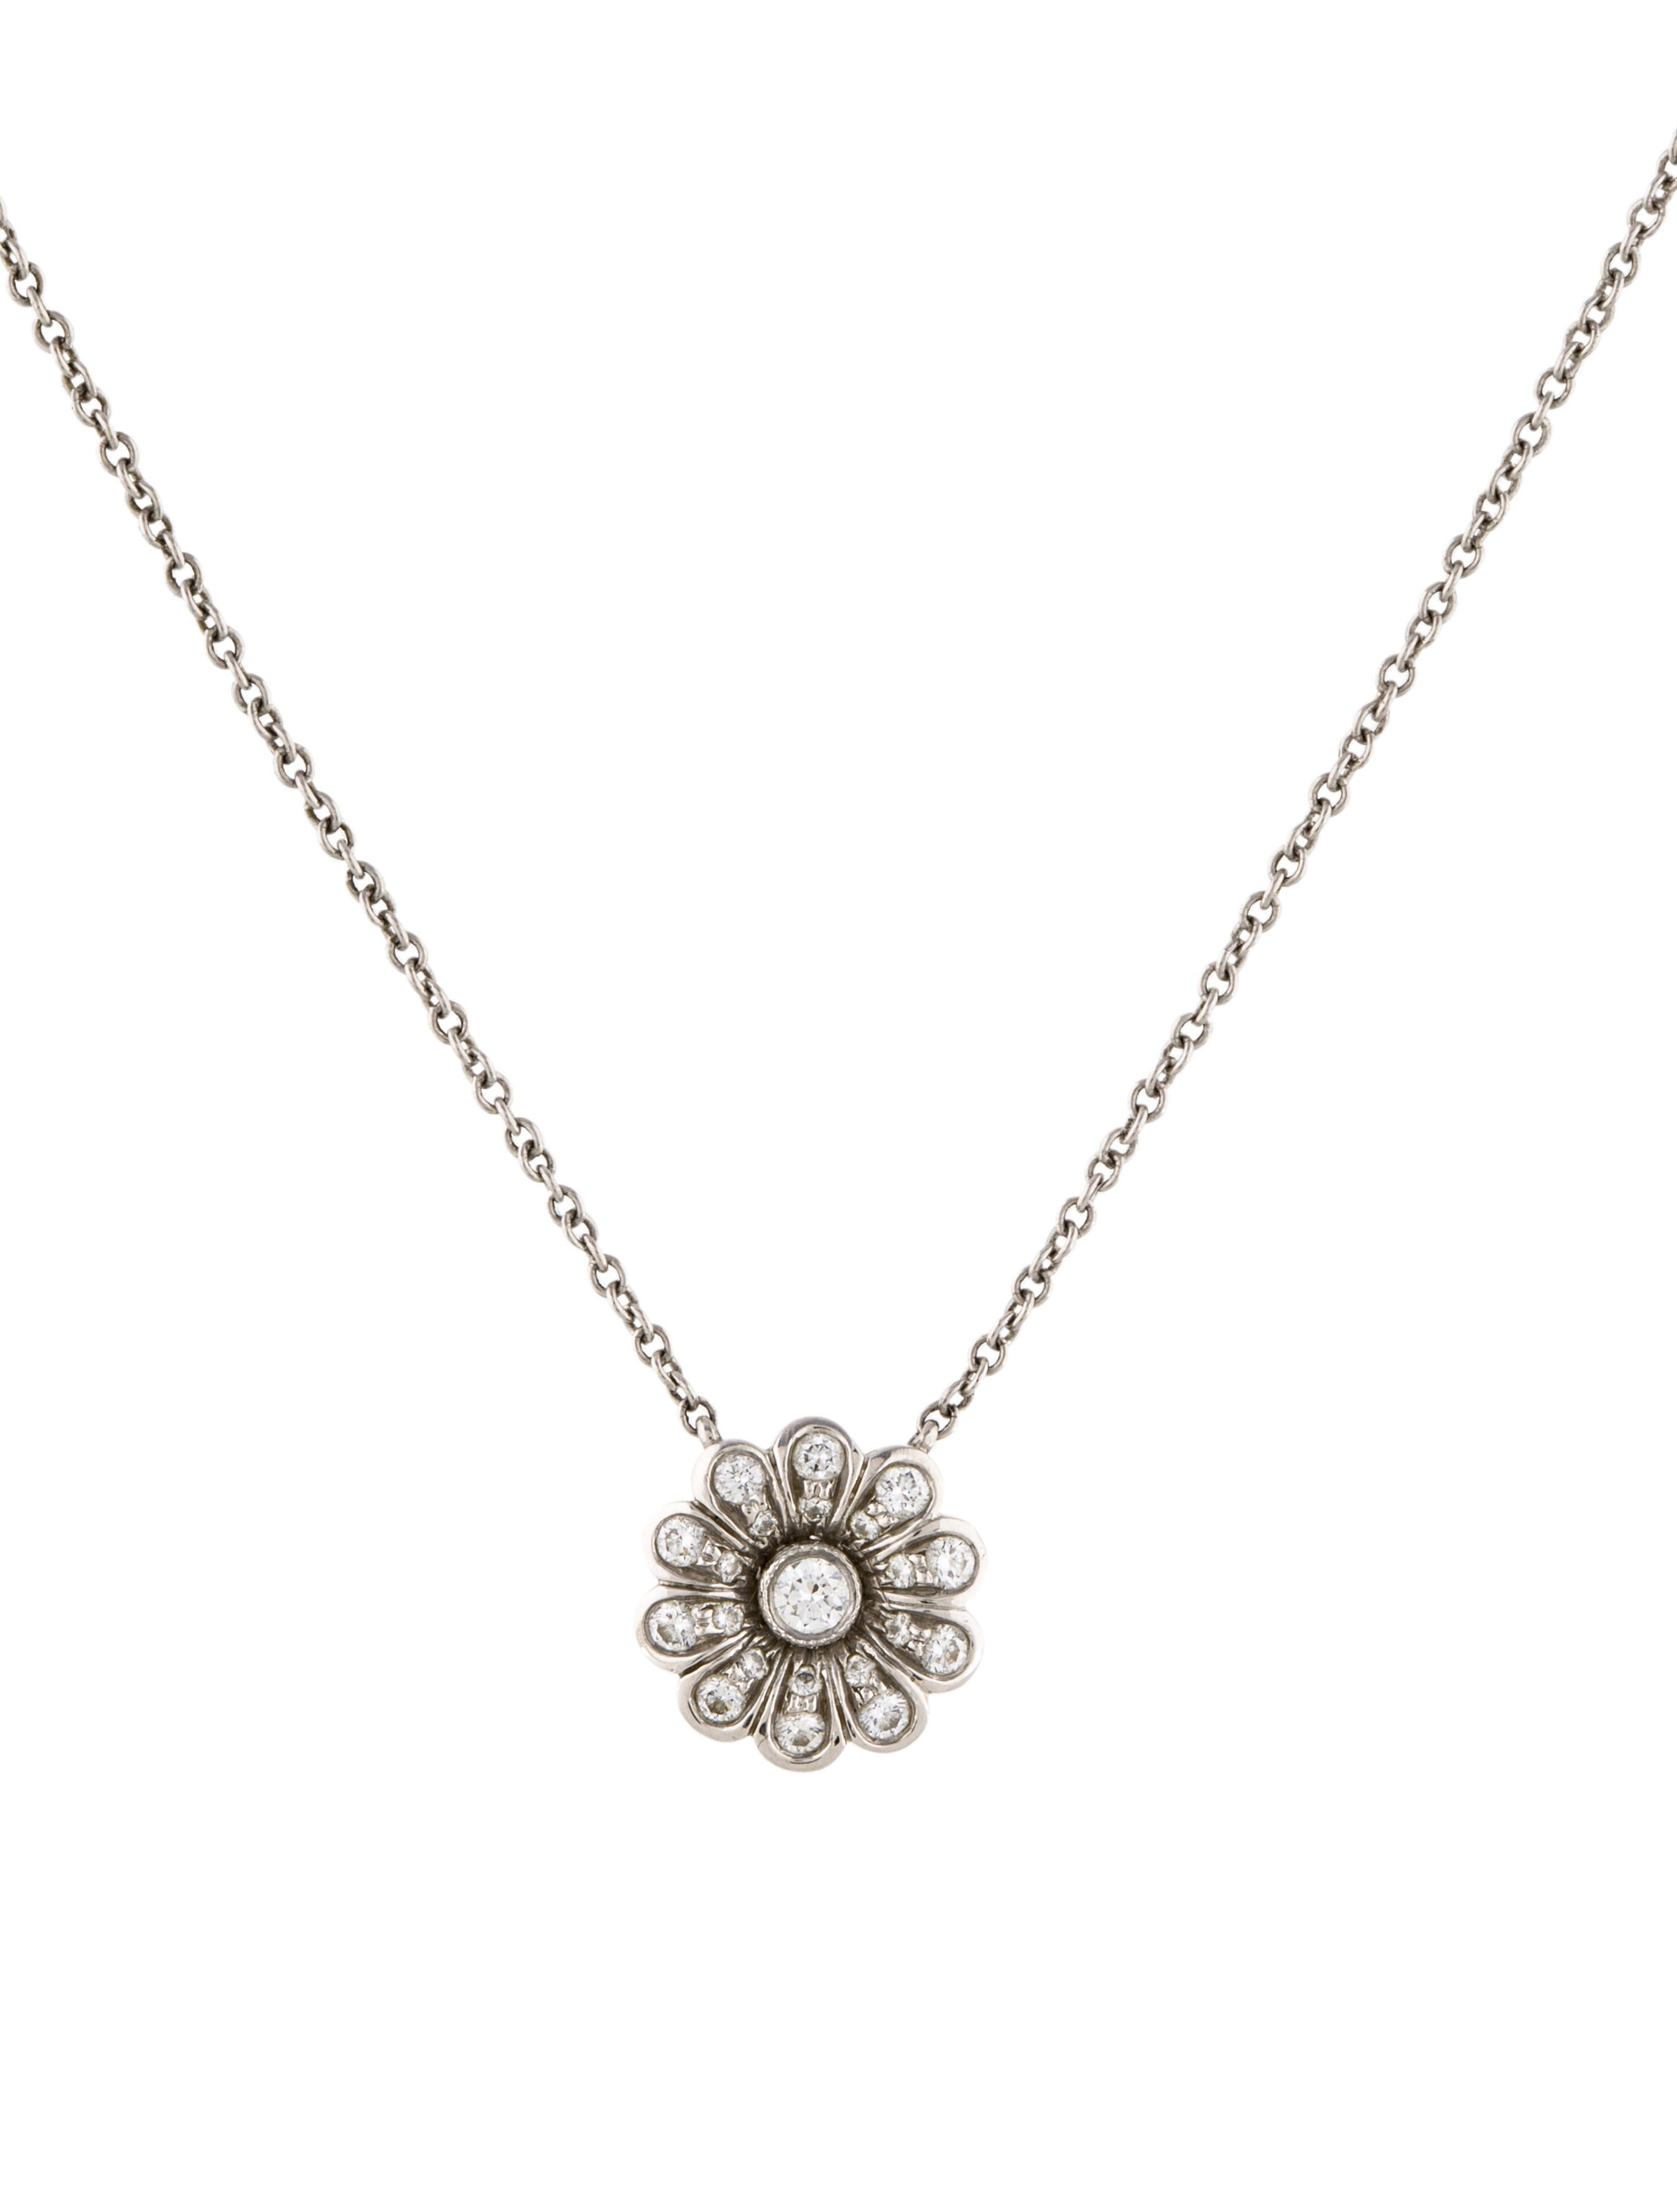 9e20b535b Tiffany & Co. Platinum Diamond Flower Pendant Necklace - Necklaces ...